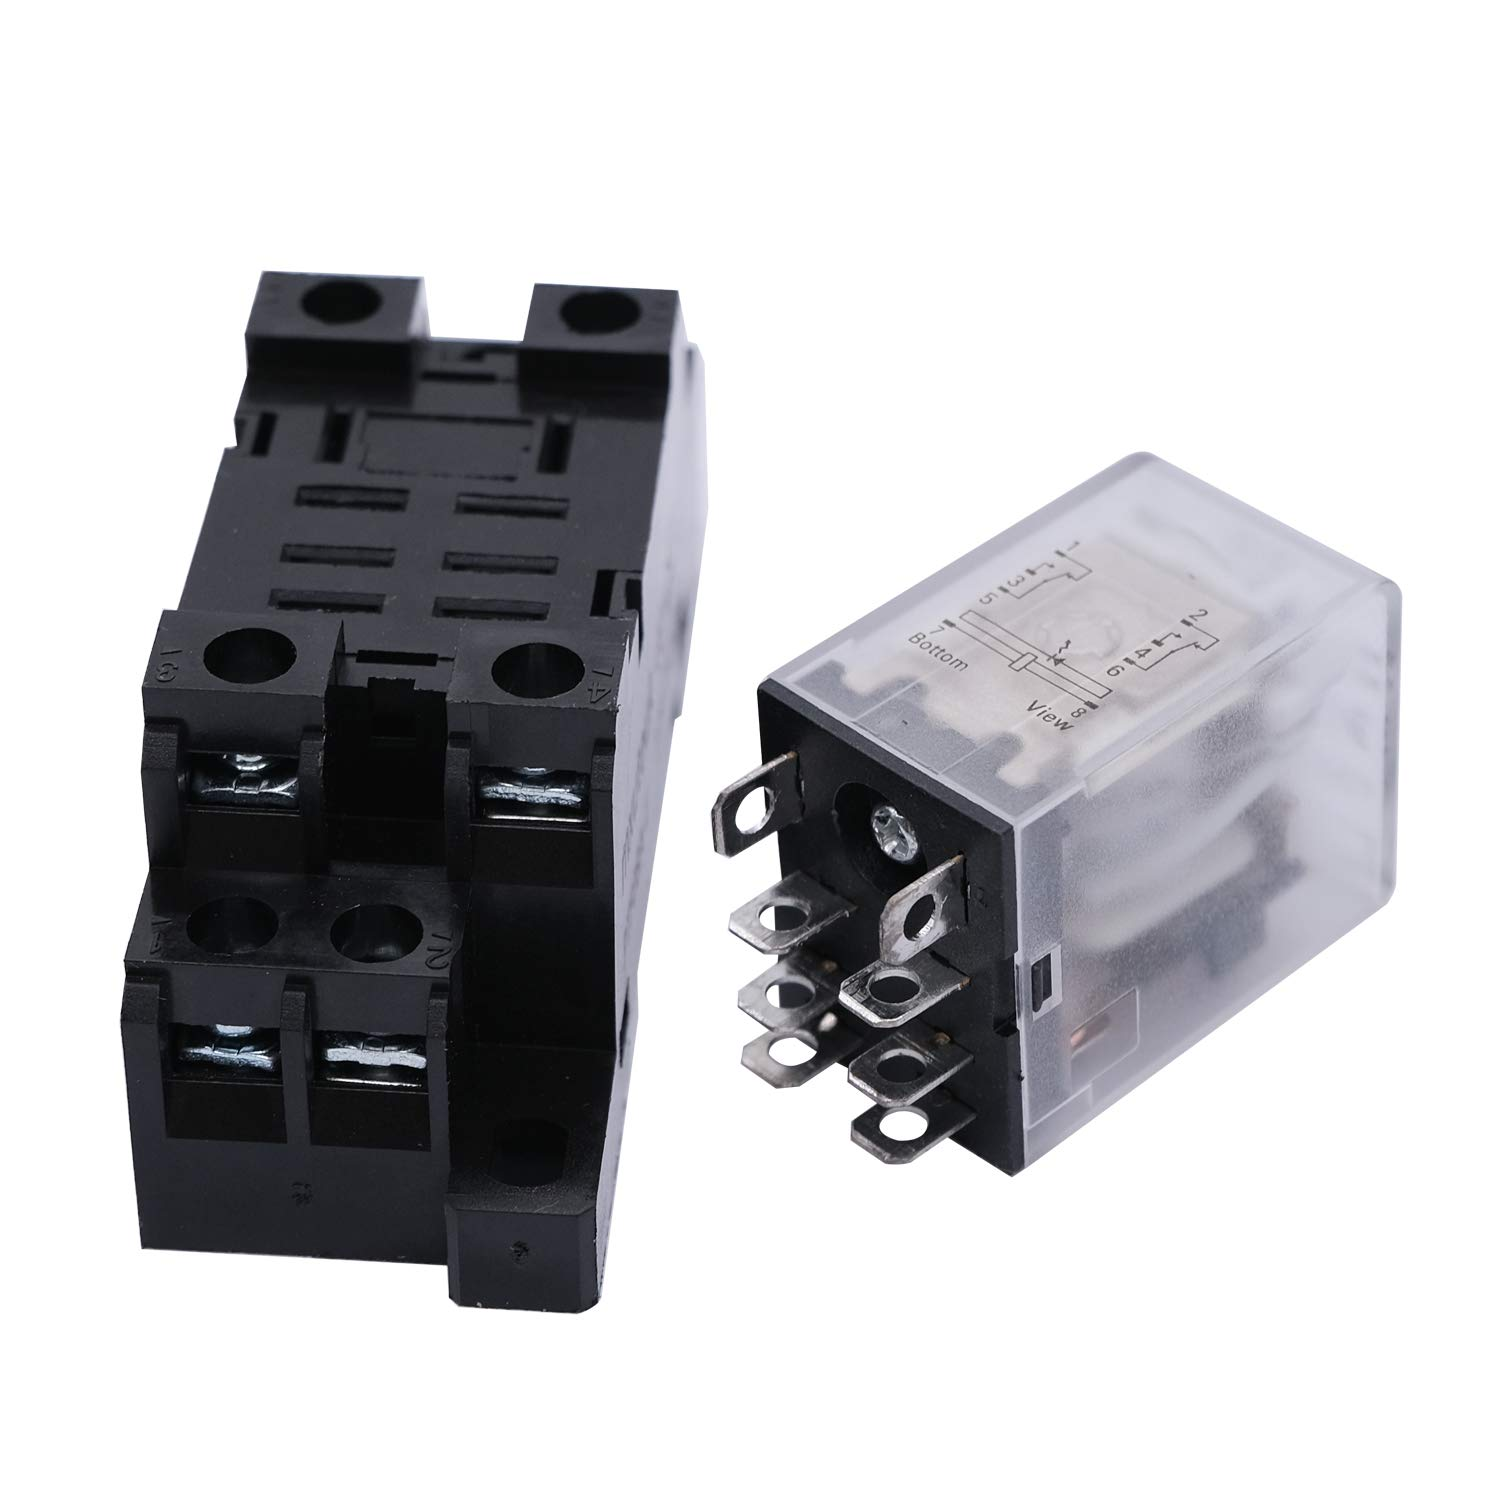 mxuteuk 2pcs HH54P DC 6V Coil 14 Pin 3A 4PDT LED Indicator Electromagnetic Power Relay with DIN Rail Slotted Aluminum with Base